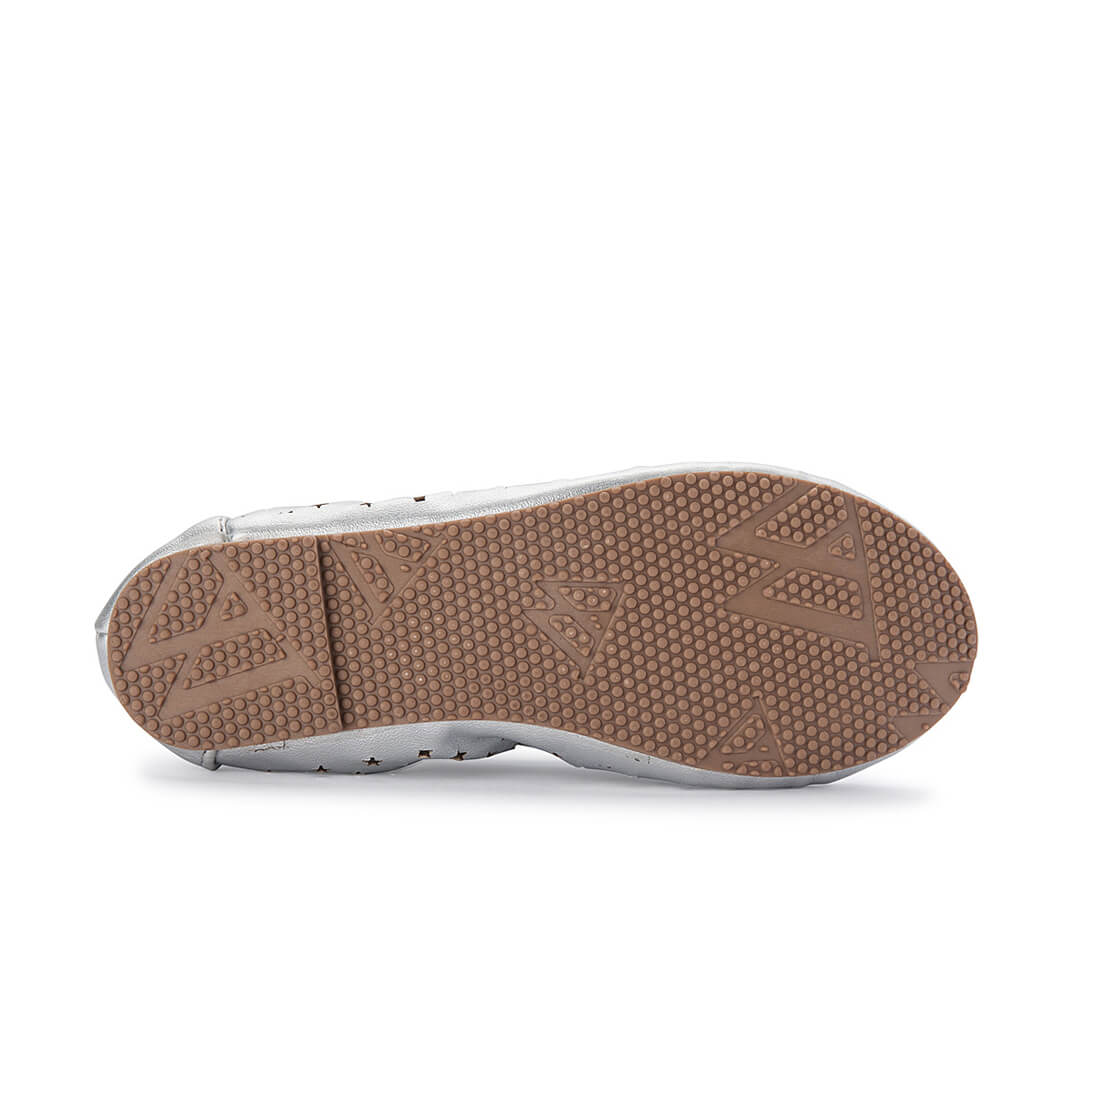 Walnut Catie Starlight Silver Girls Ballet Shoe sole